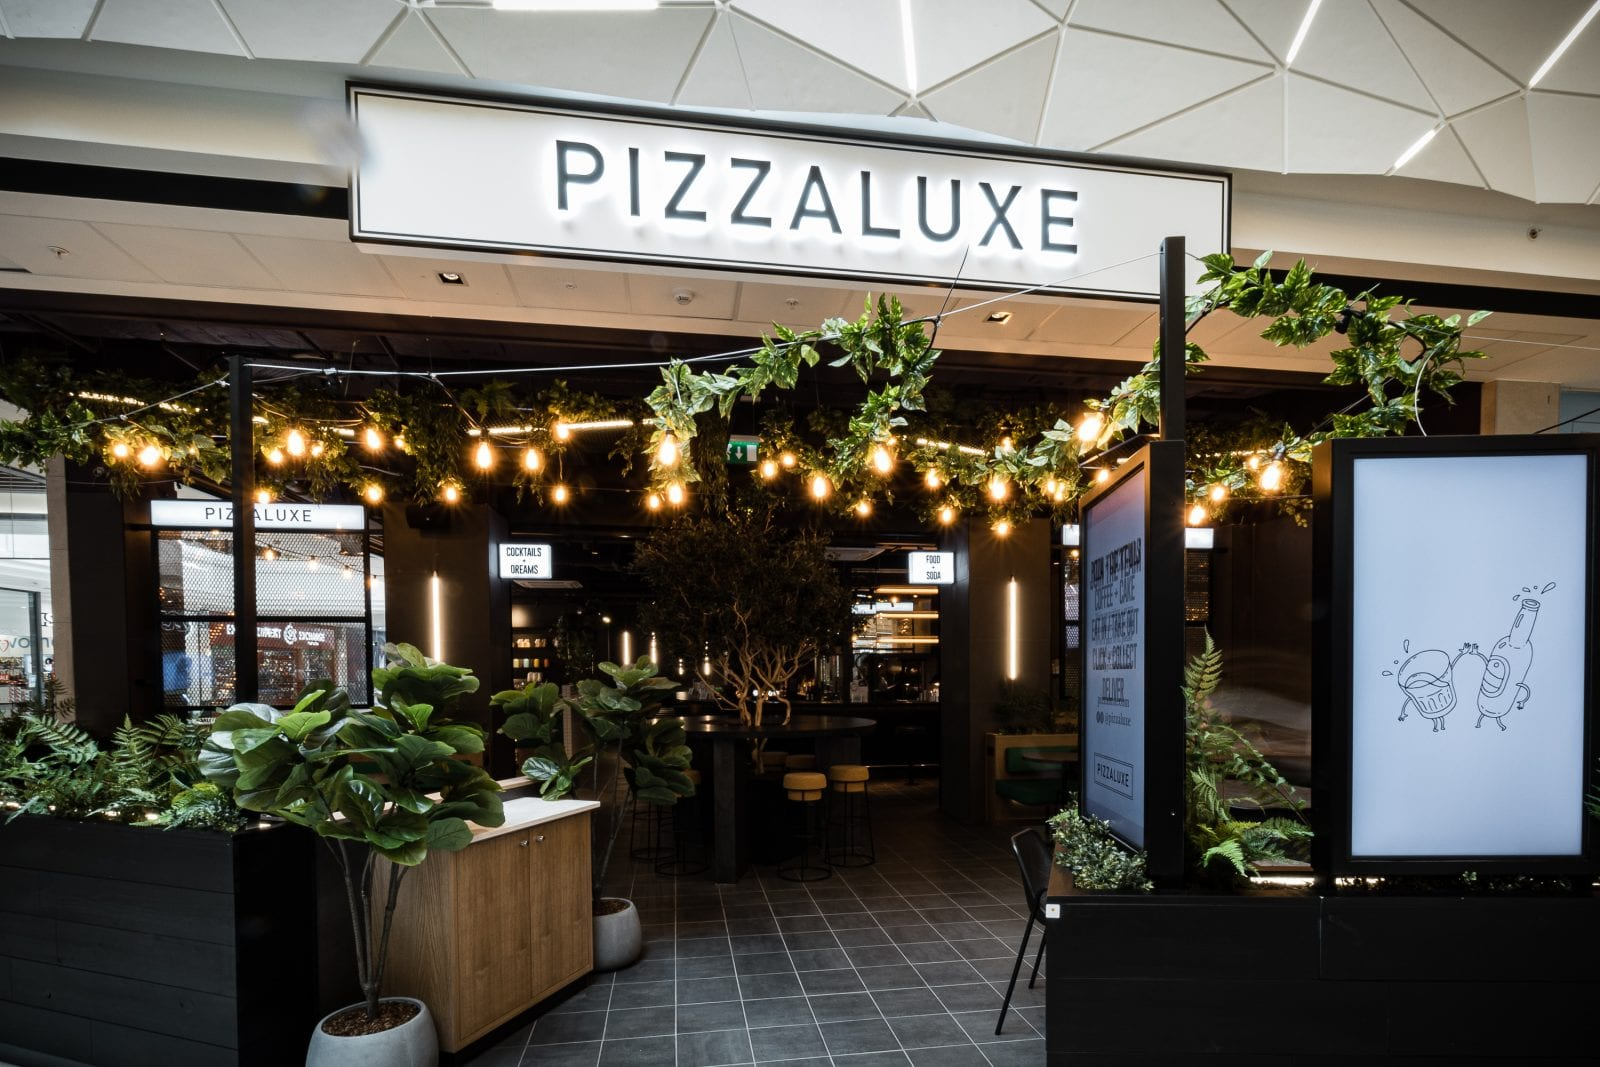 A new gourmet pizza and cocktail bar is opening in Manchester Arndale this month, The Manc